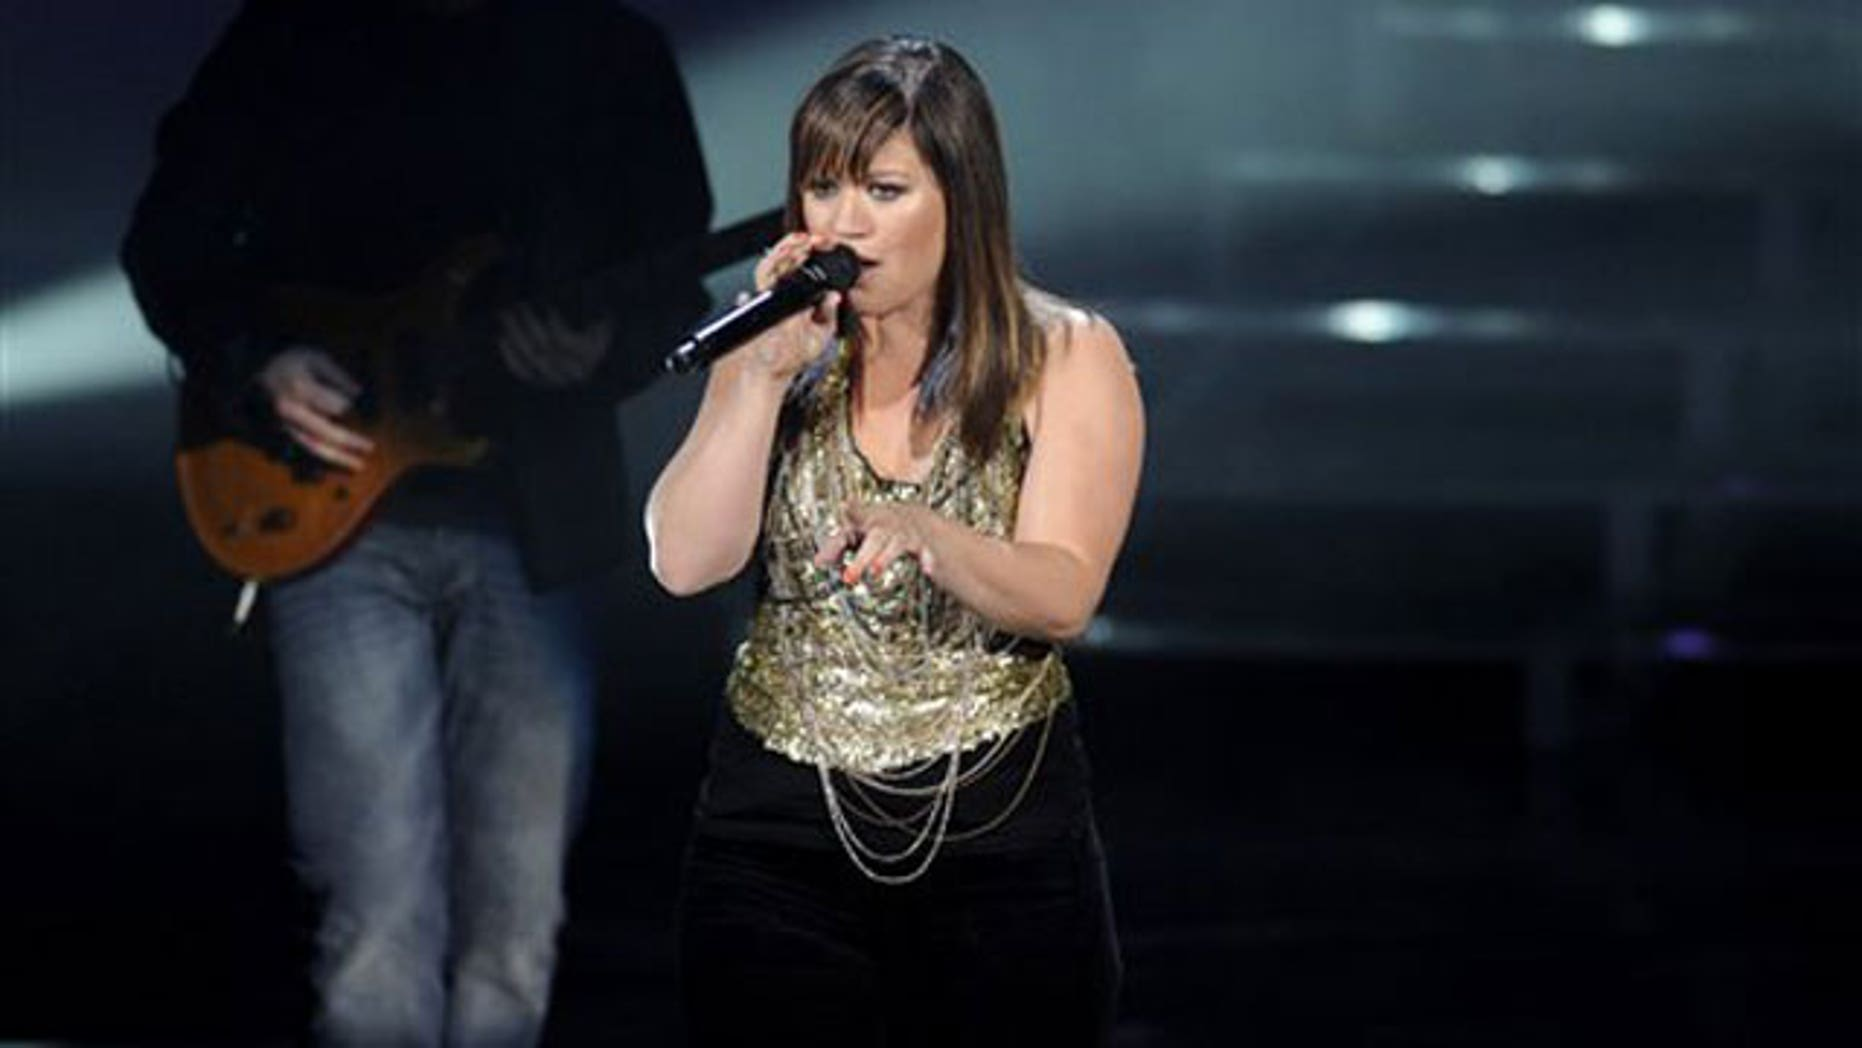 """Kelly Clarkson performs onstage at """"Vh1 Divas Celebrates Soul"""" on Sunday, Dec. 18, 2011, in New York. (AP)"""